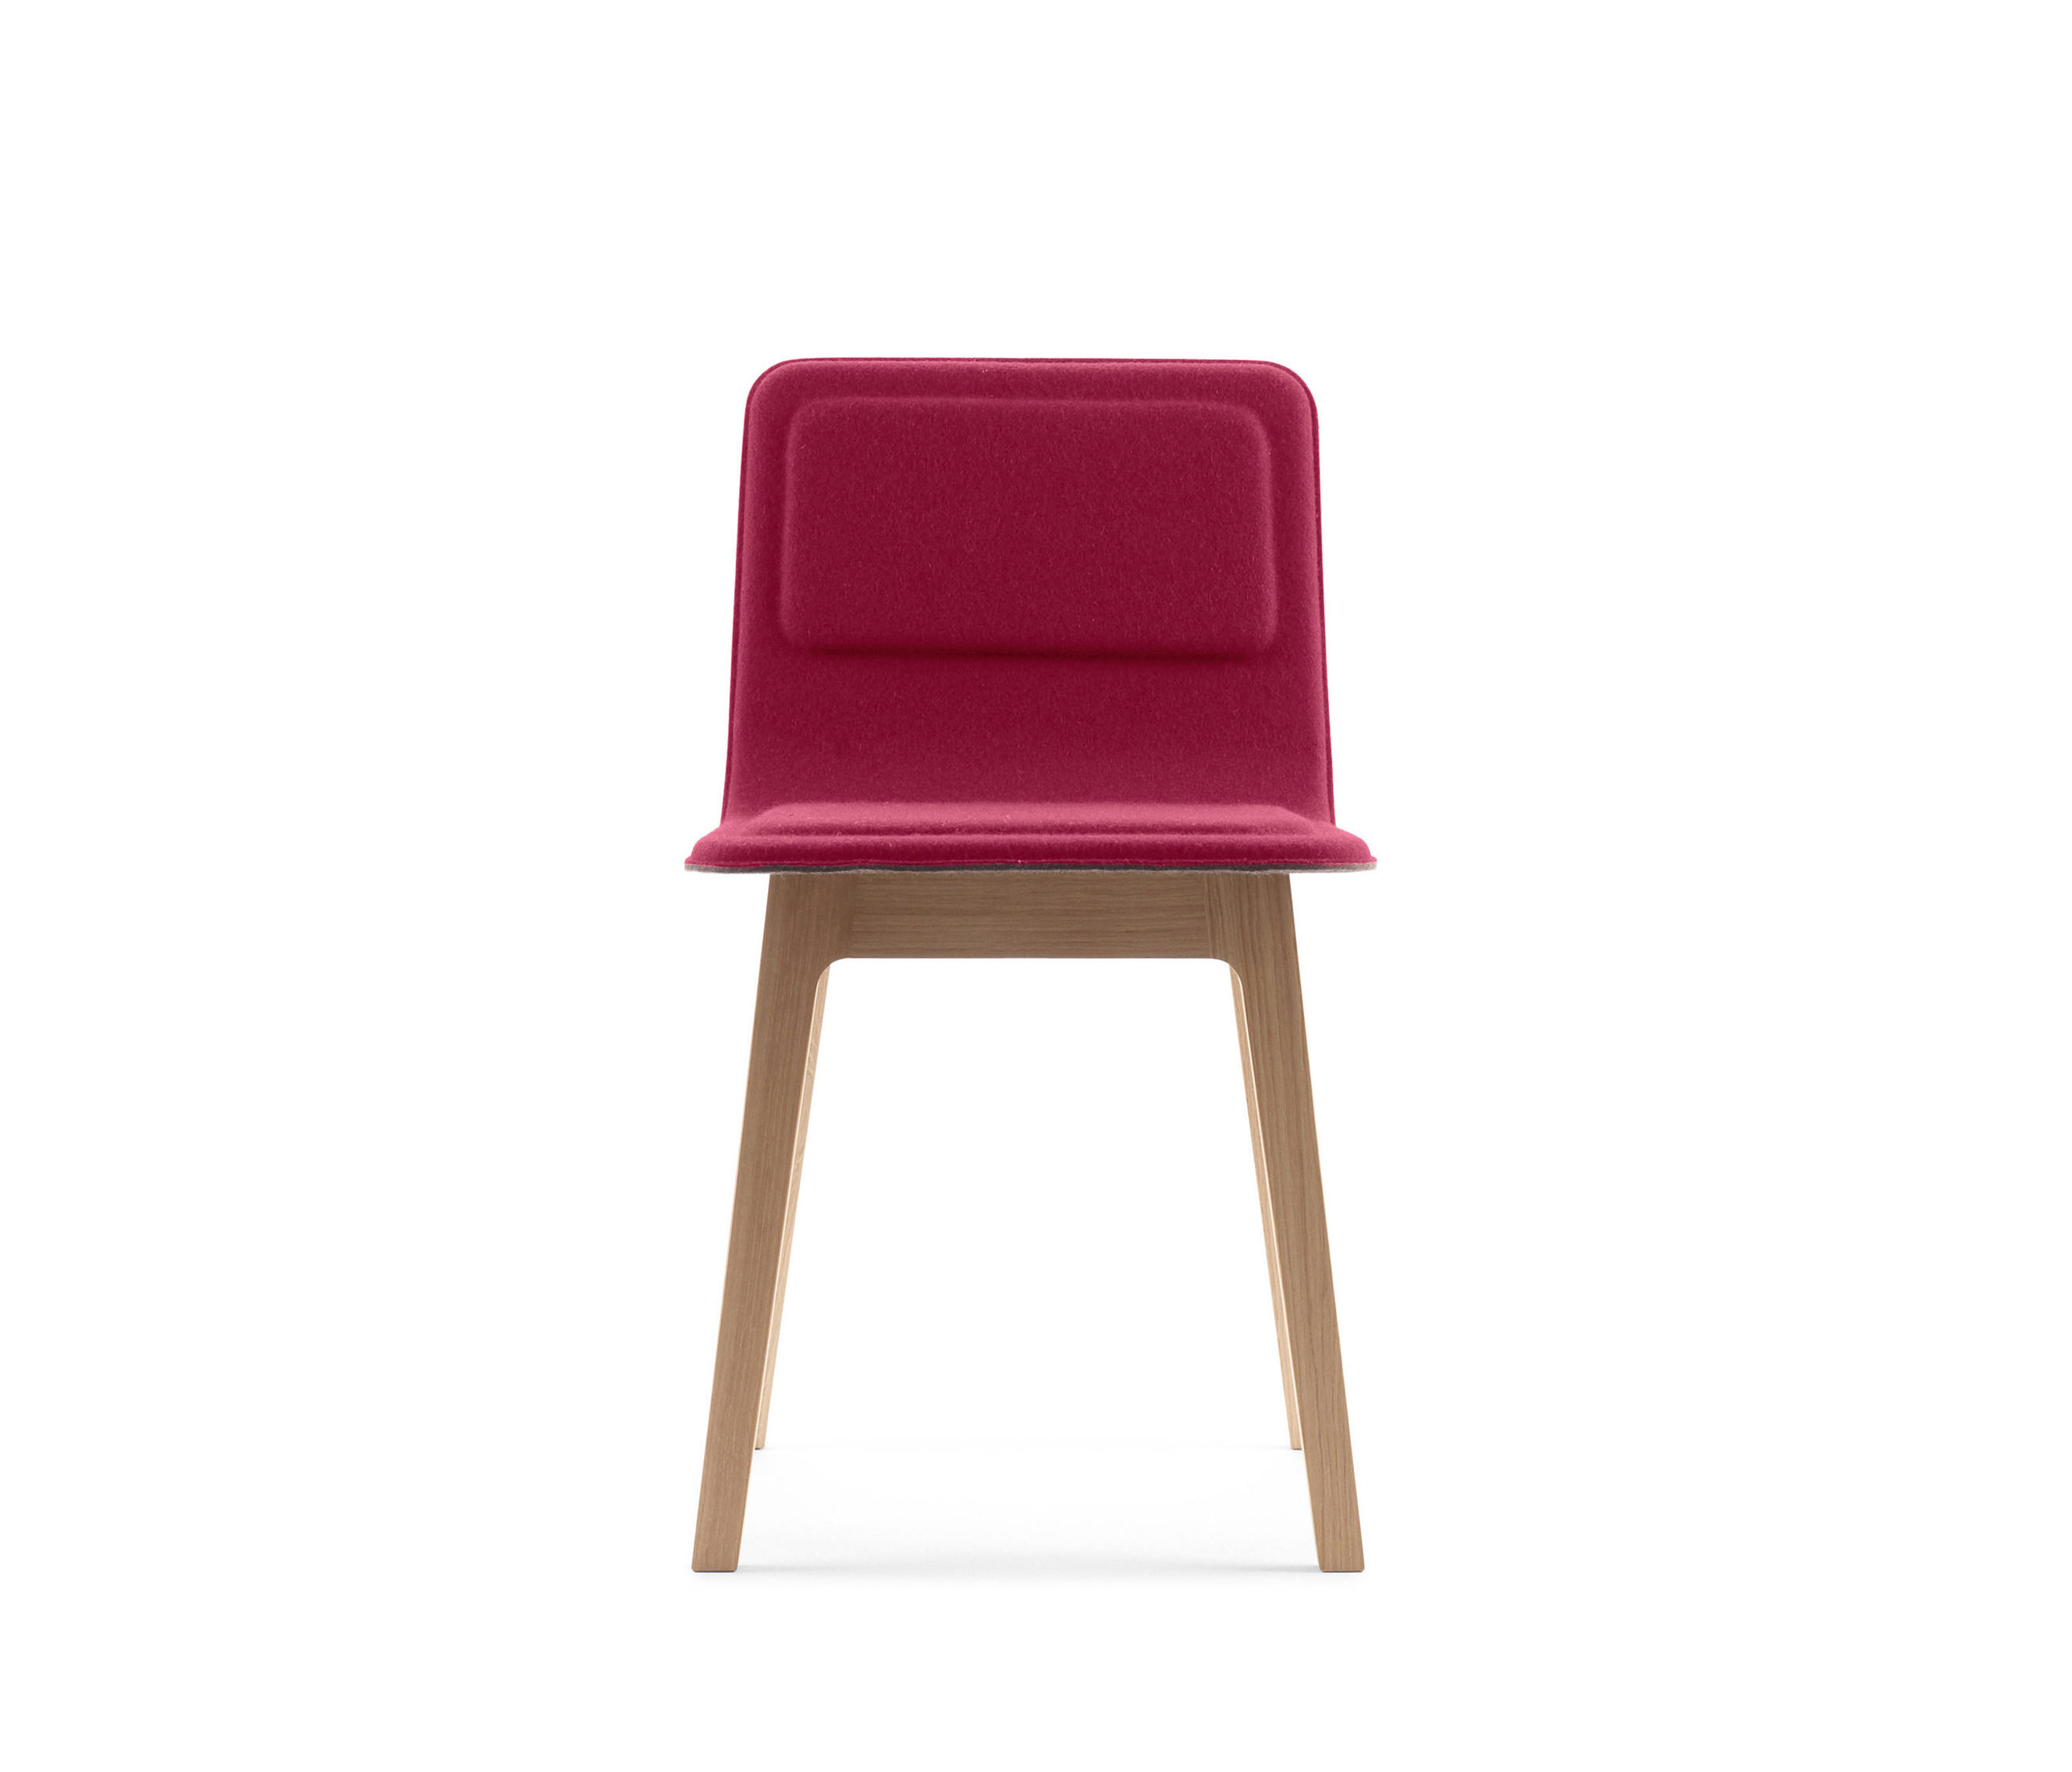 Alki Chaises Laia Chair Chairs From Alki Architonic